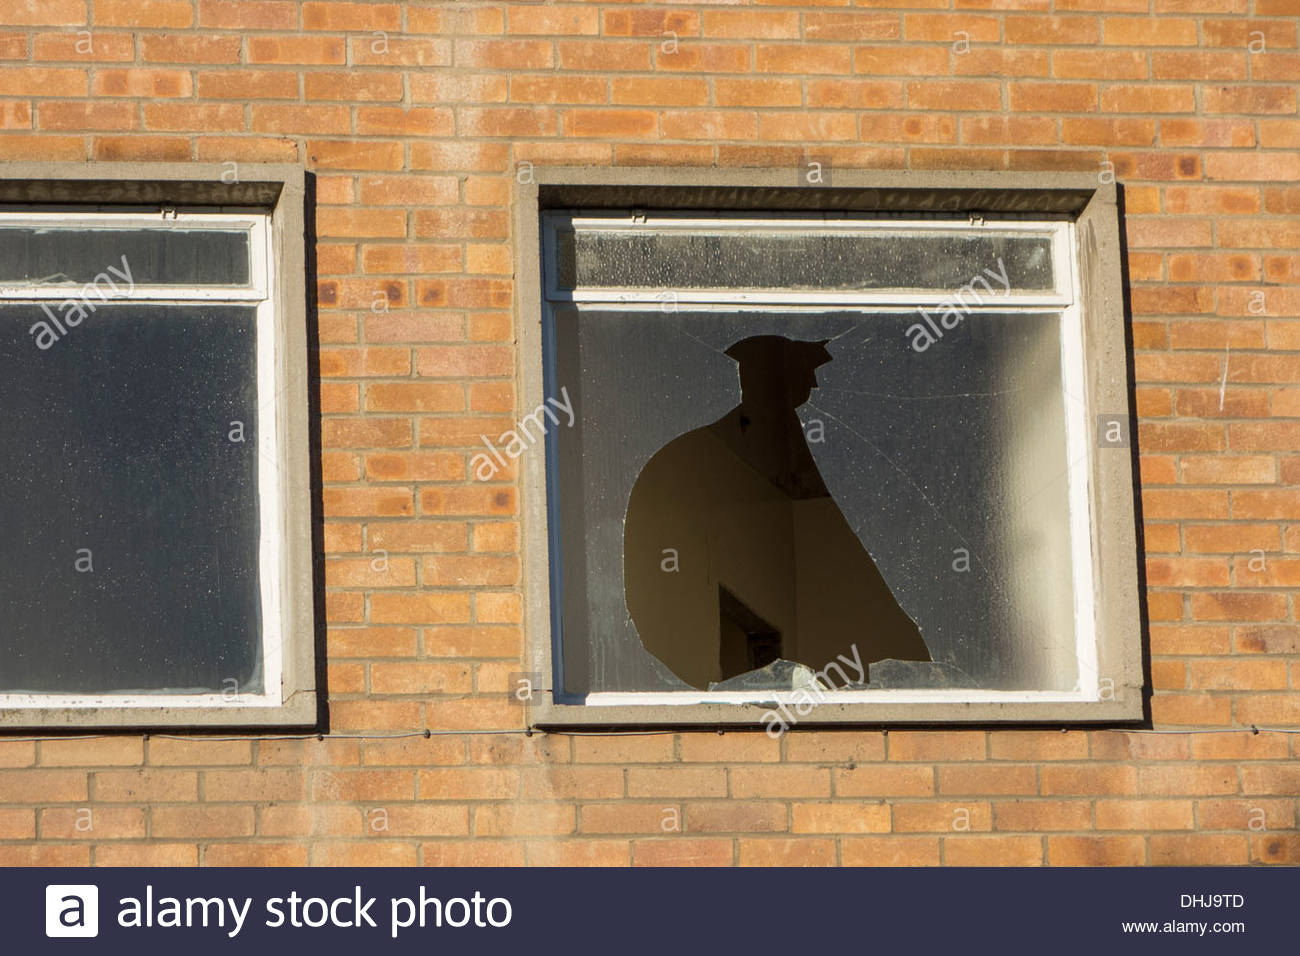 Broken window in a building that is being demolished in Huntingdon, Cambridgeshire - Stock Image